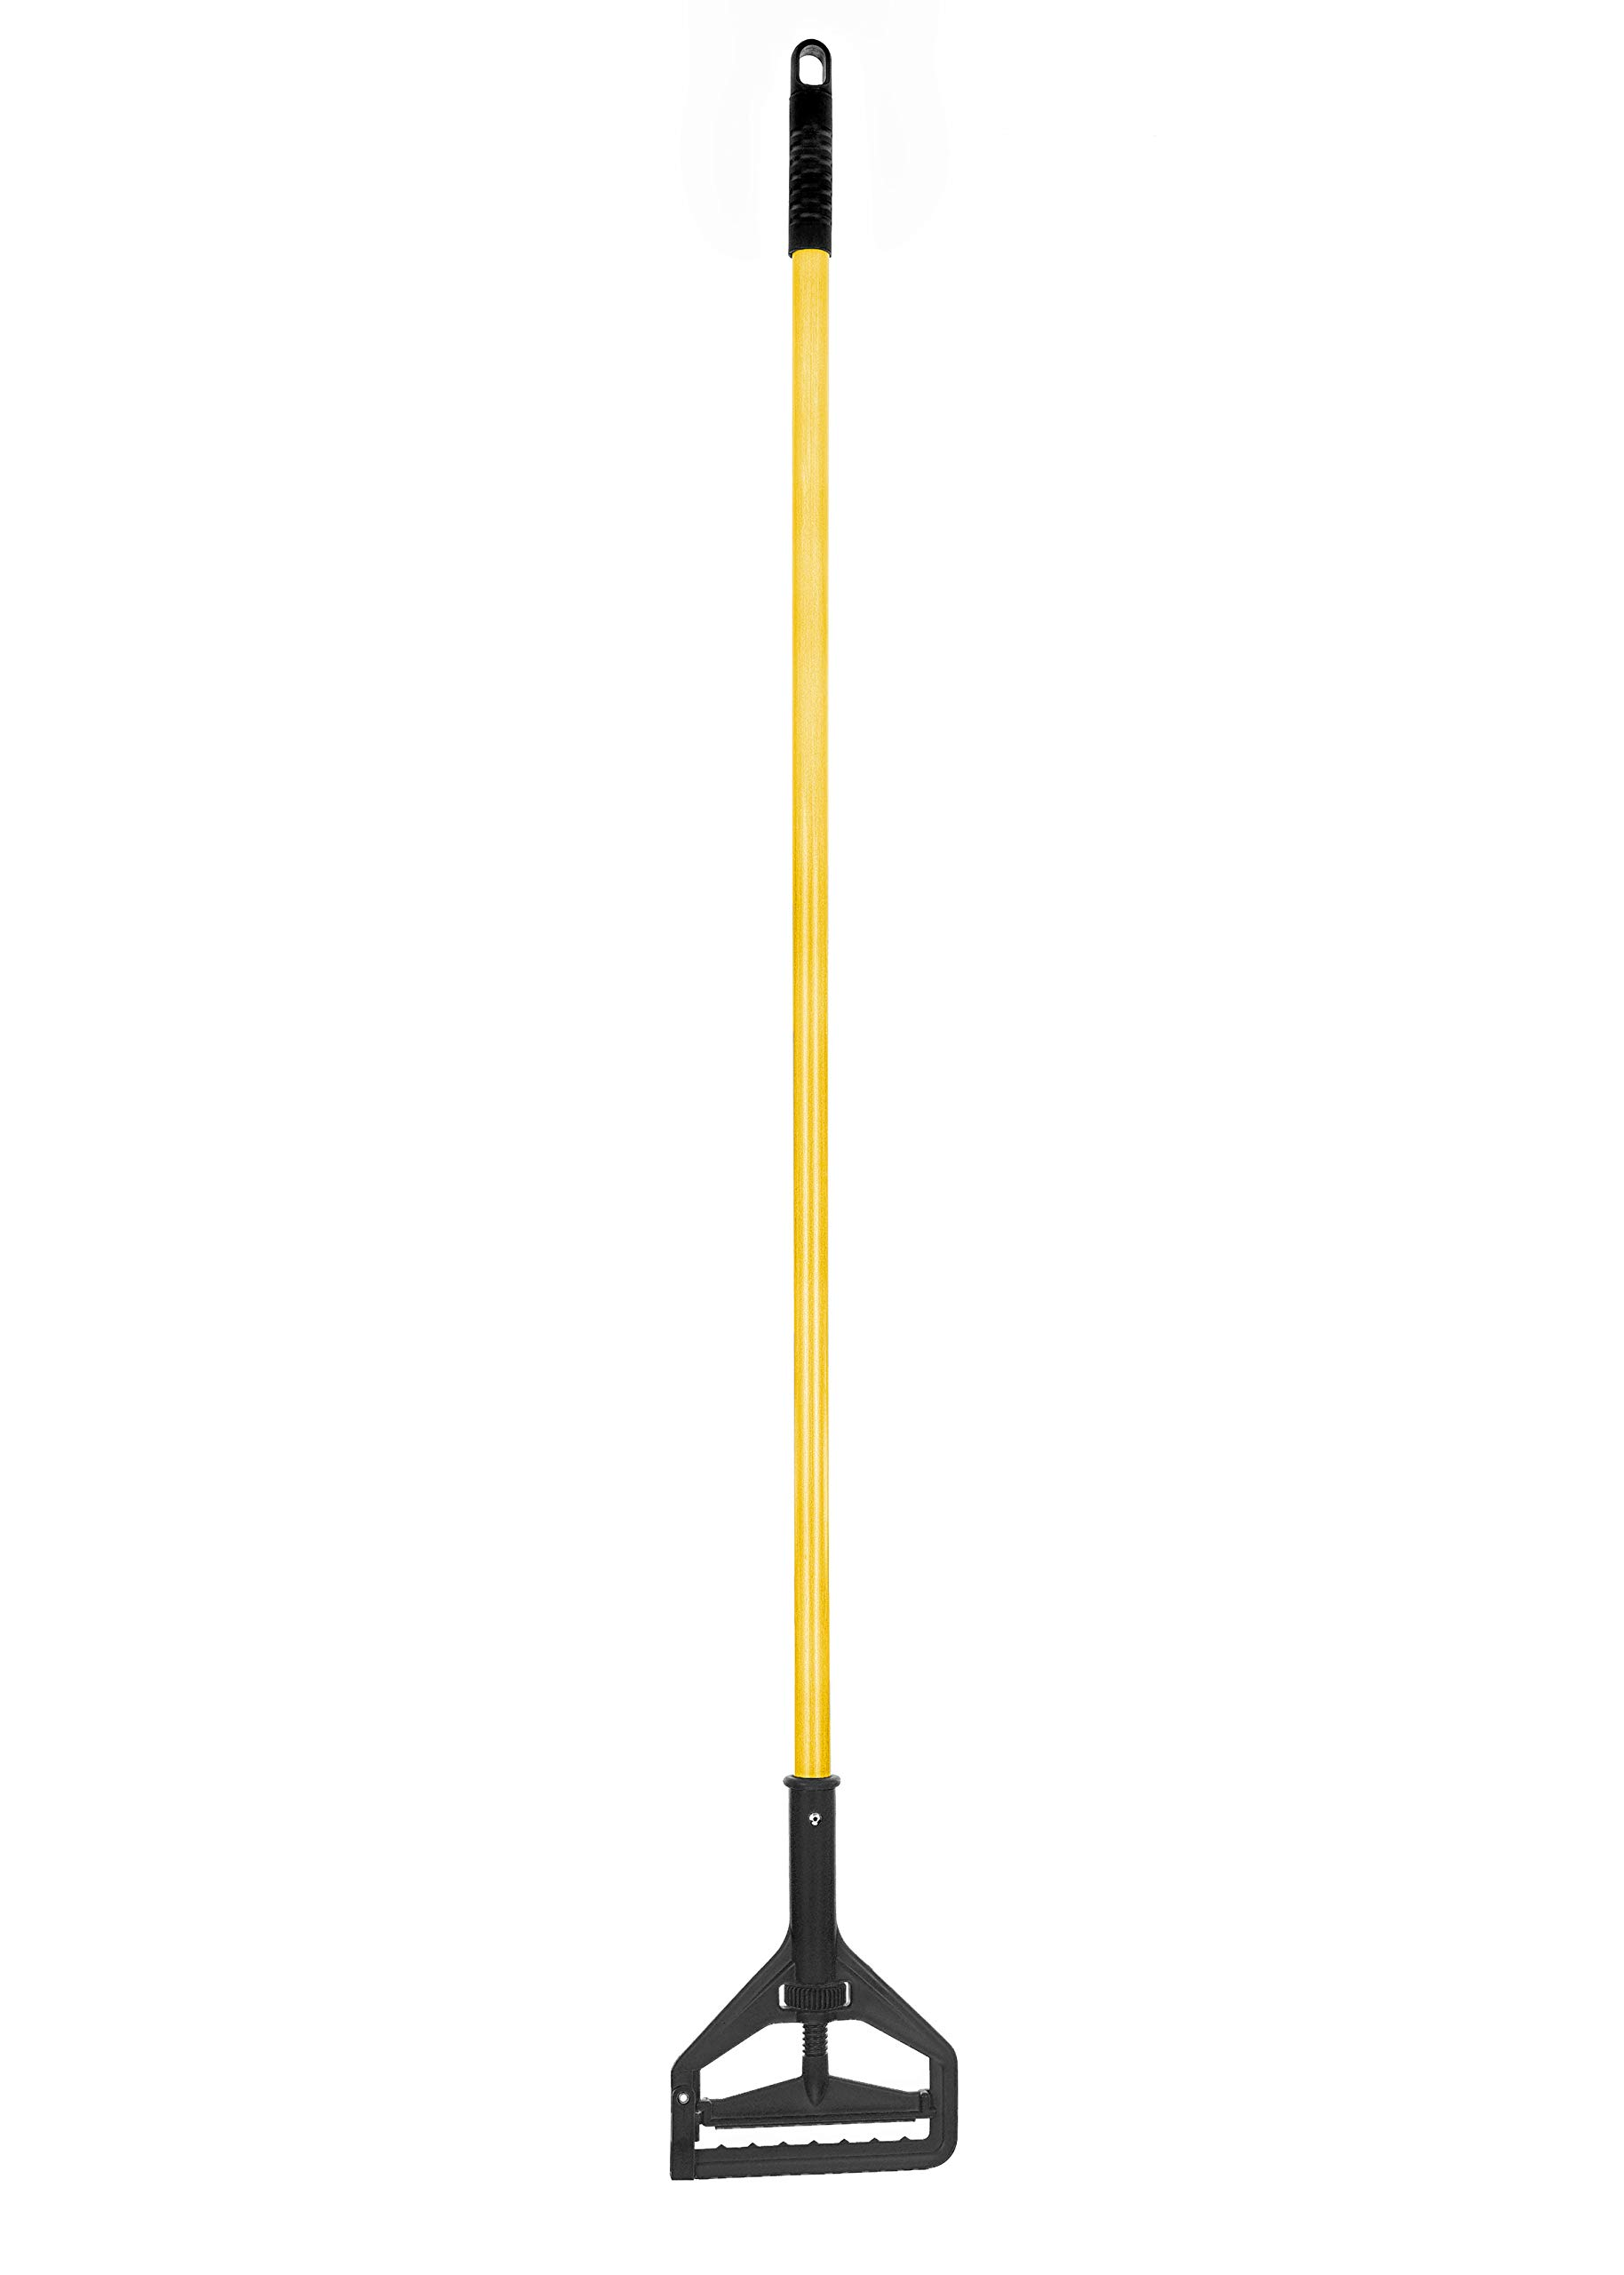 Alpine Industries Commercial Quick-Change Iron Mop Handle - Professional Mopping Tube w/Metal Gripper for Rags - Heavy Duty Stick & Mop Head Replacement Holder for Wet & Dry Floor Floor Cleaning by Alpine Industries